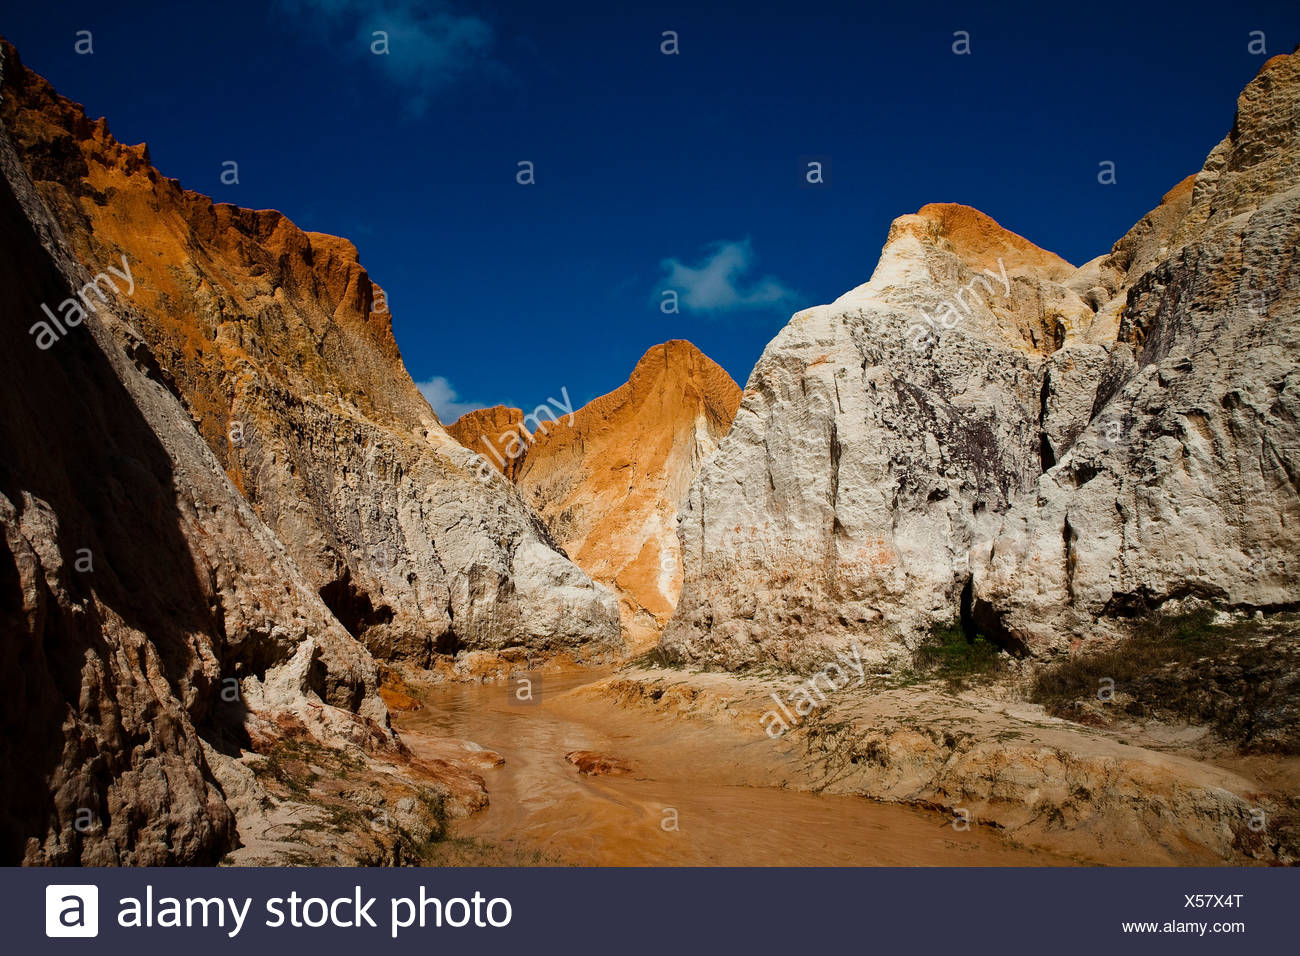 Morro Branco beach multi-colored cliffs and labyrinths, Ceara State, Northeast Brazil. - Stock Image